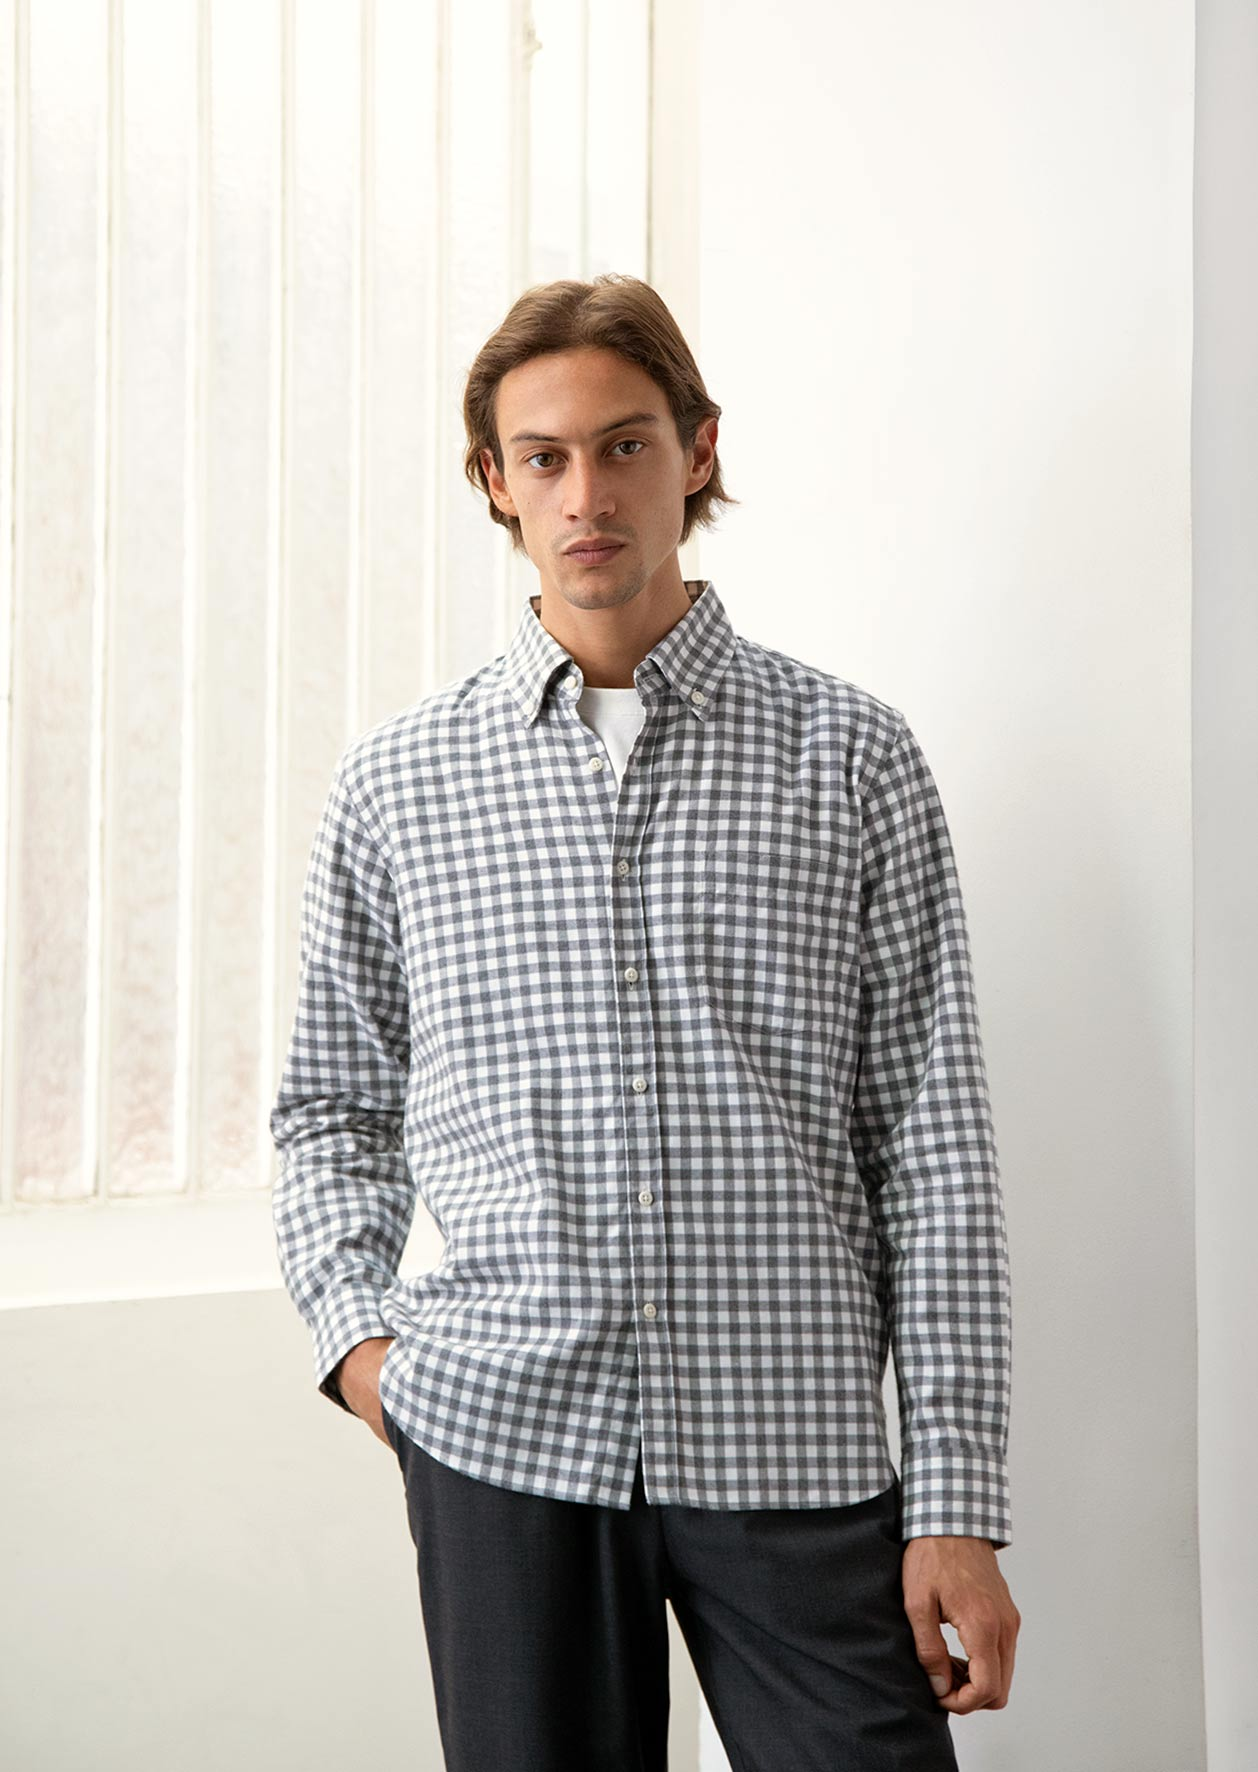 De Bonne Facture - Buttondown shirt - Cotton flannel - Checks